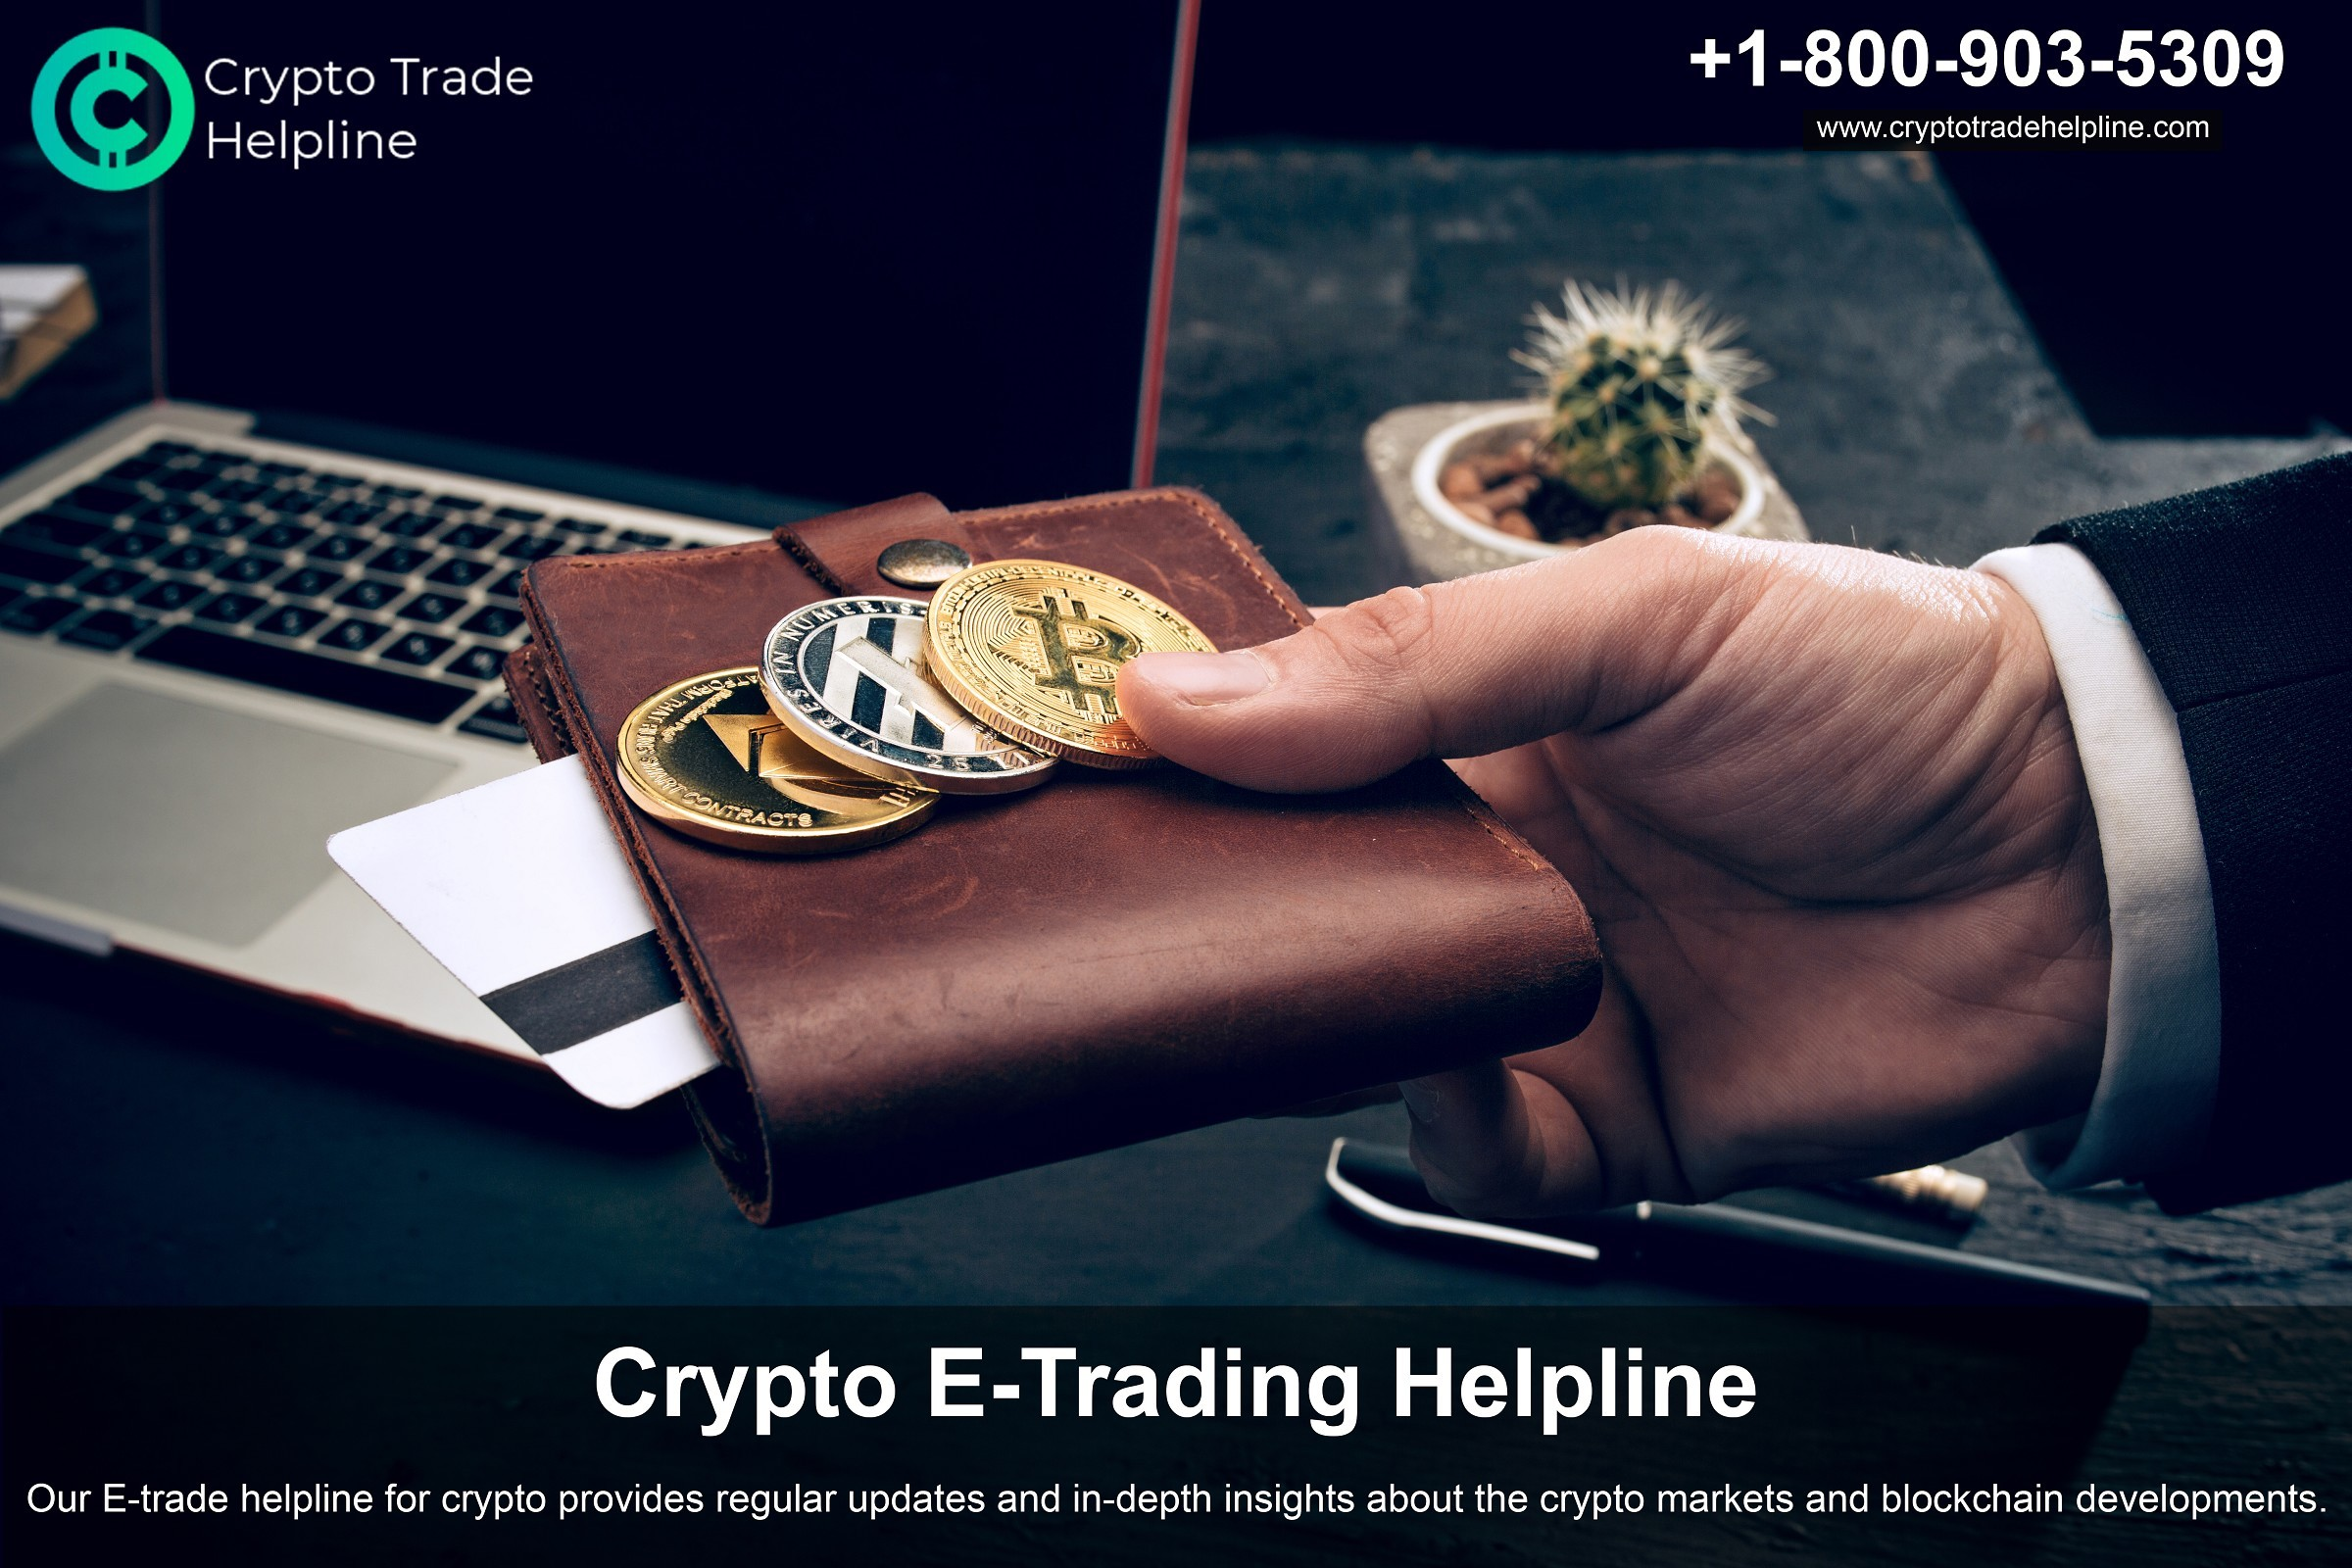 Cryptocurrency Brokers for Investment, Crypto Trading Experts